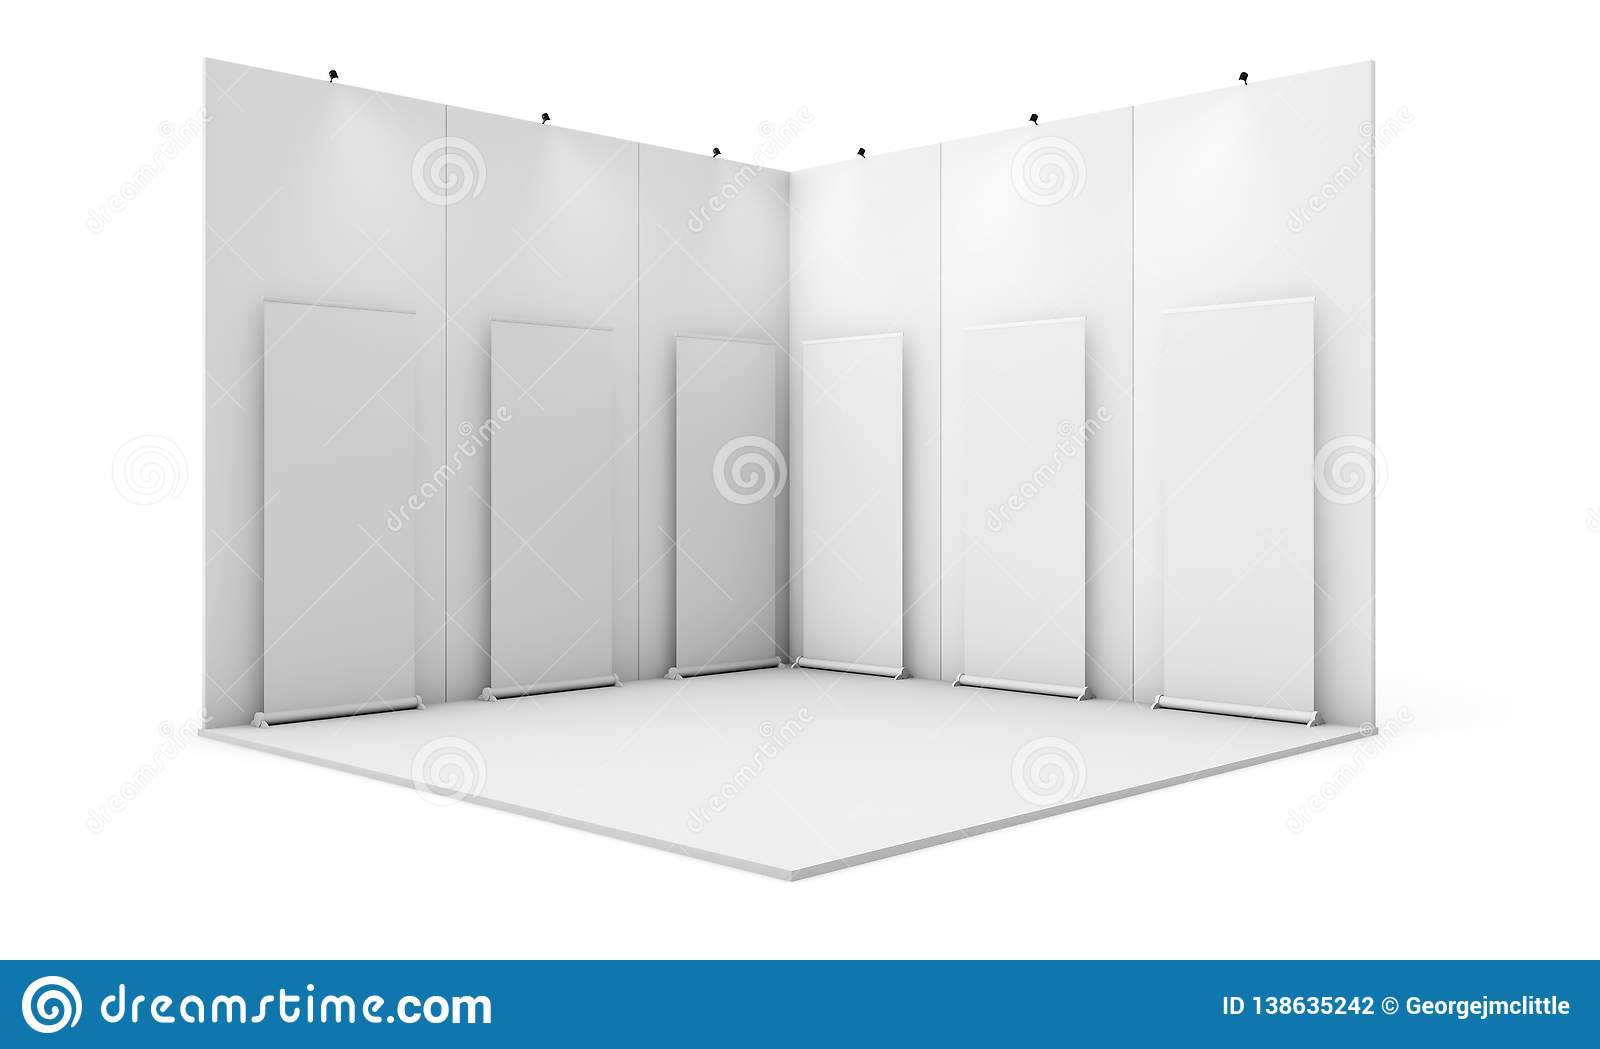 Exhibition Stand Reception : Exhibition stand with six rollups stock illustration illustration